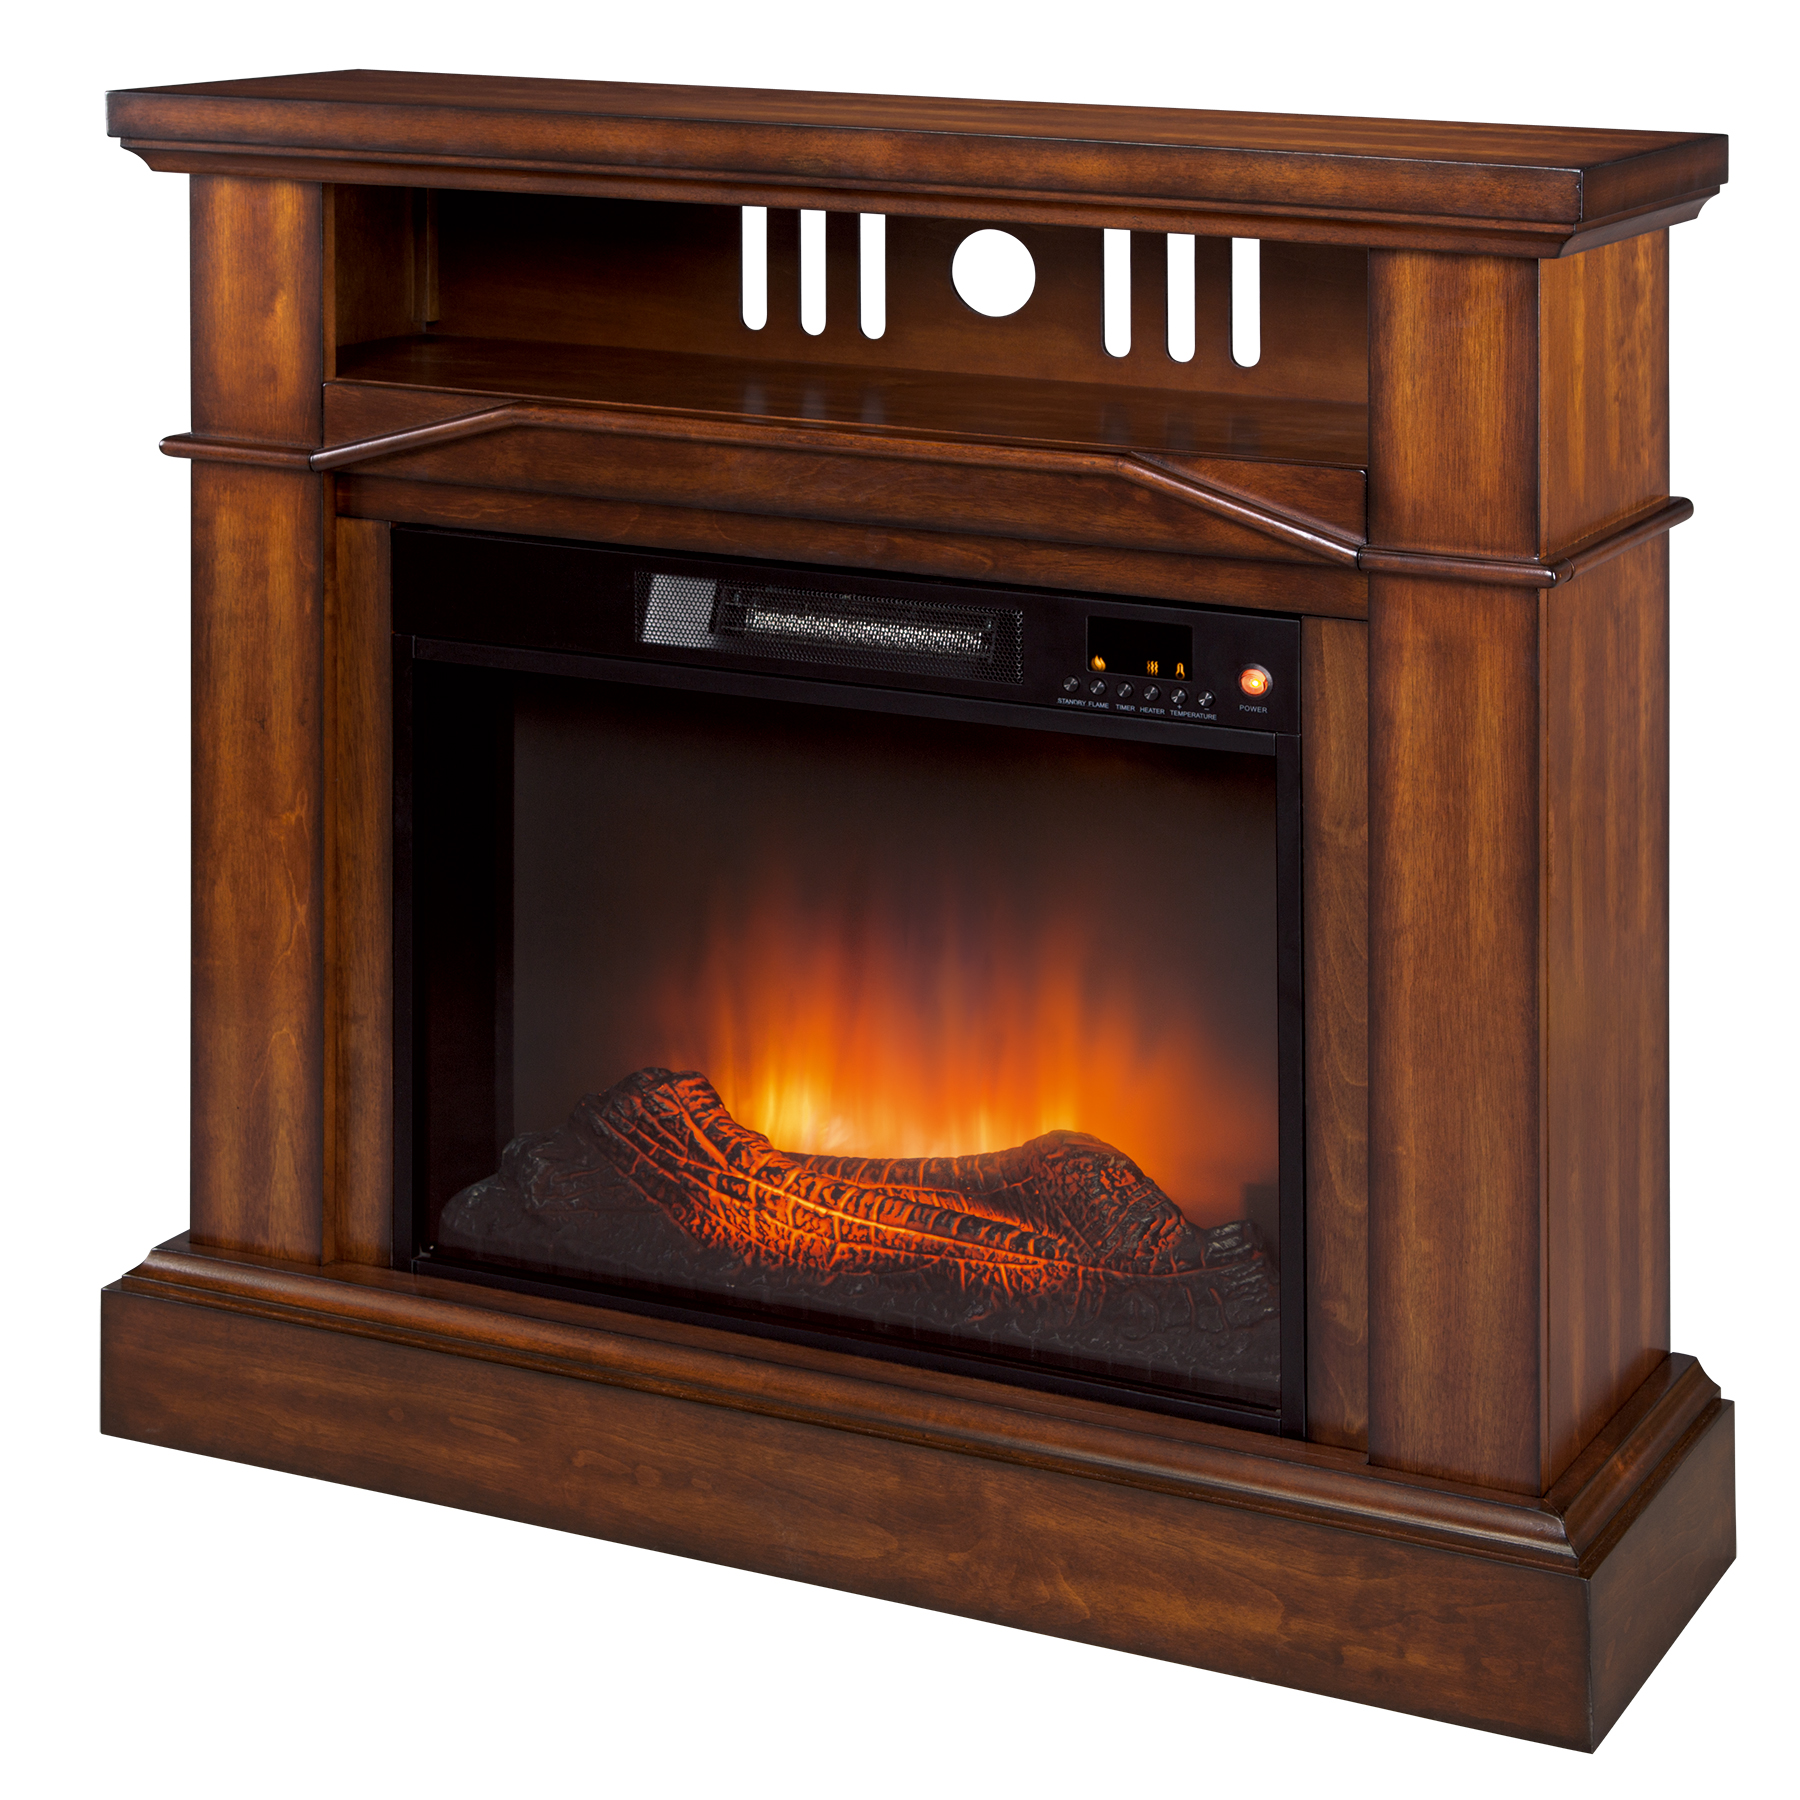 Telluride Wood Veneer Fireplace Keep Cozy and Entertained With Kmart